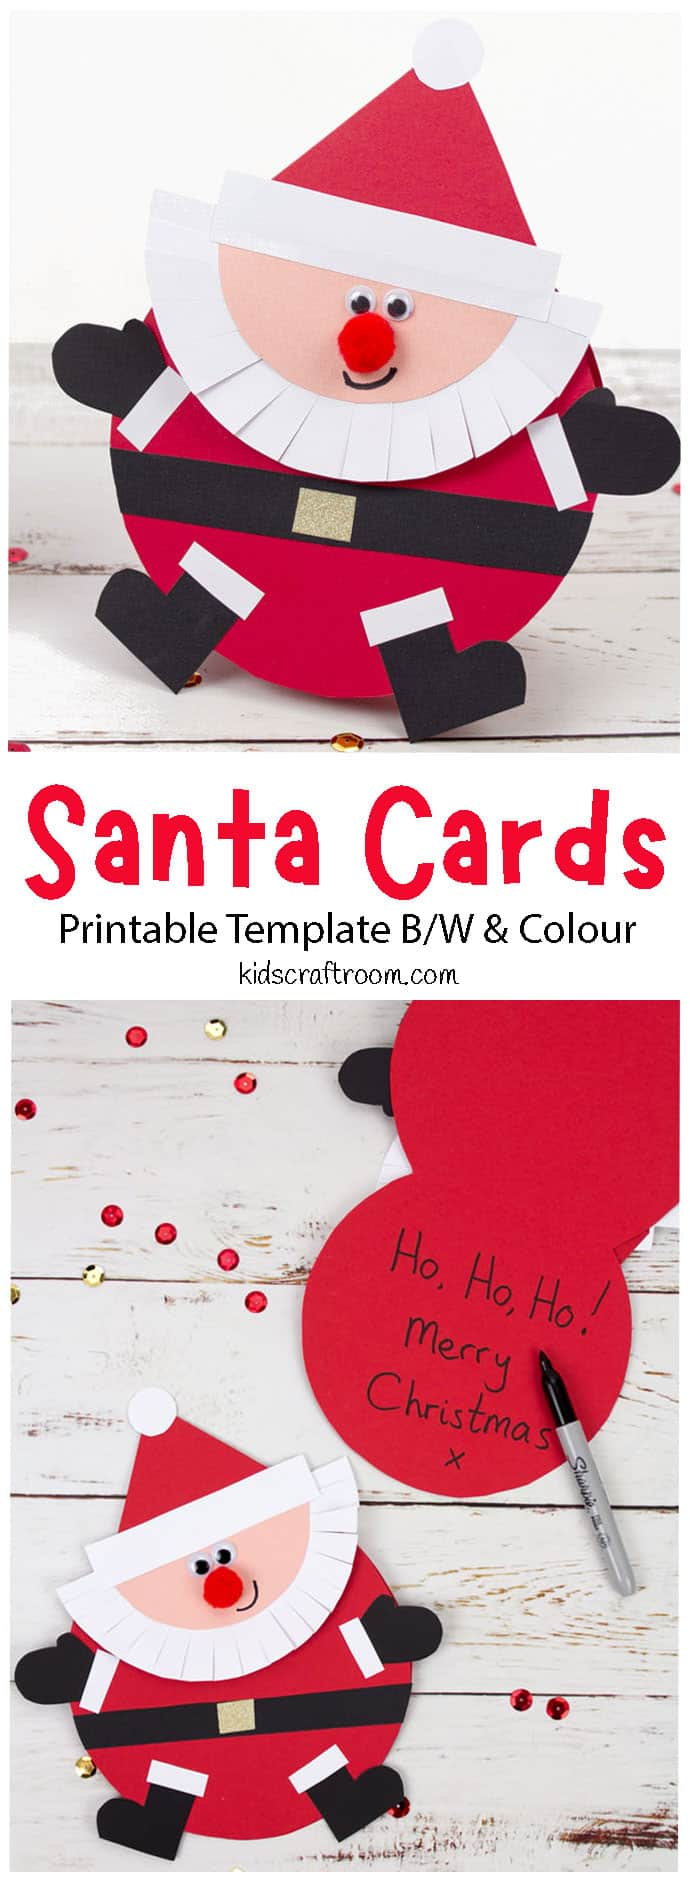 Round Santa Christmas Cards Craft pin image 1